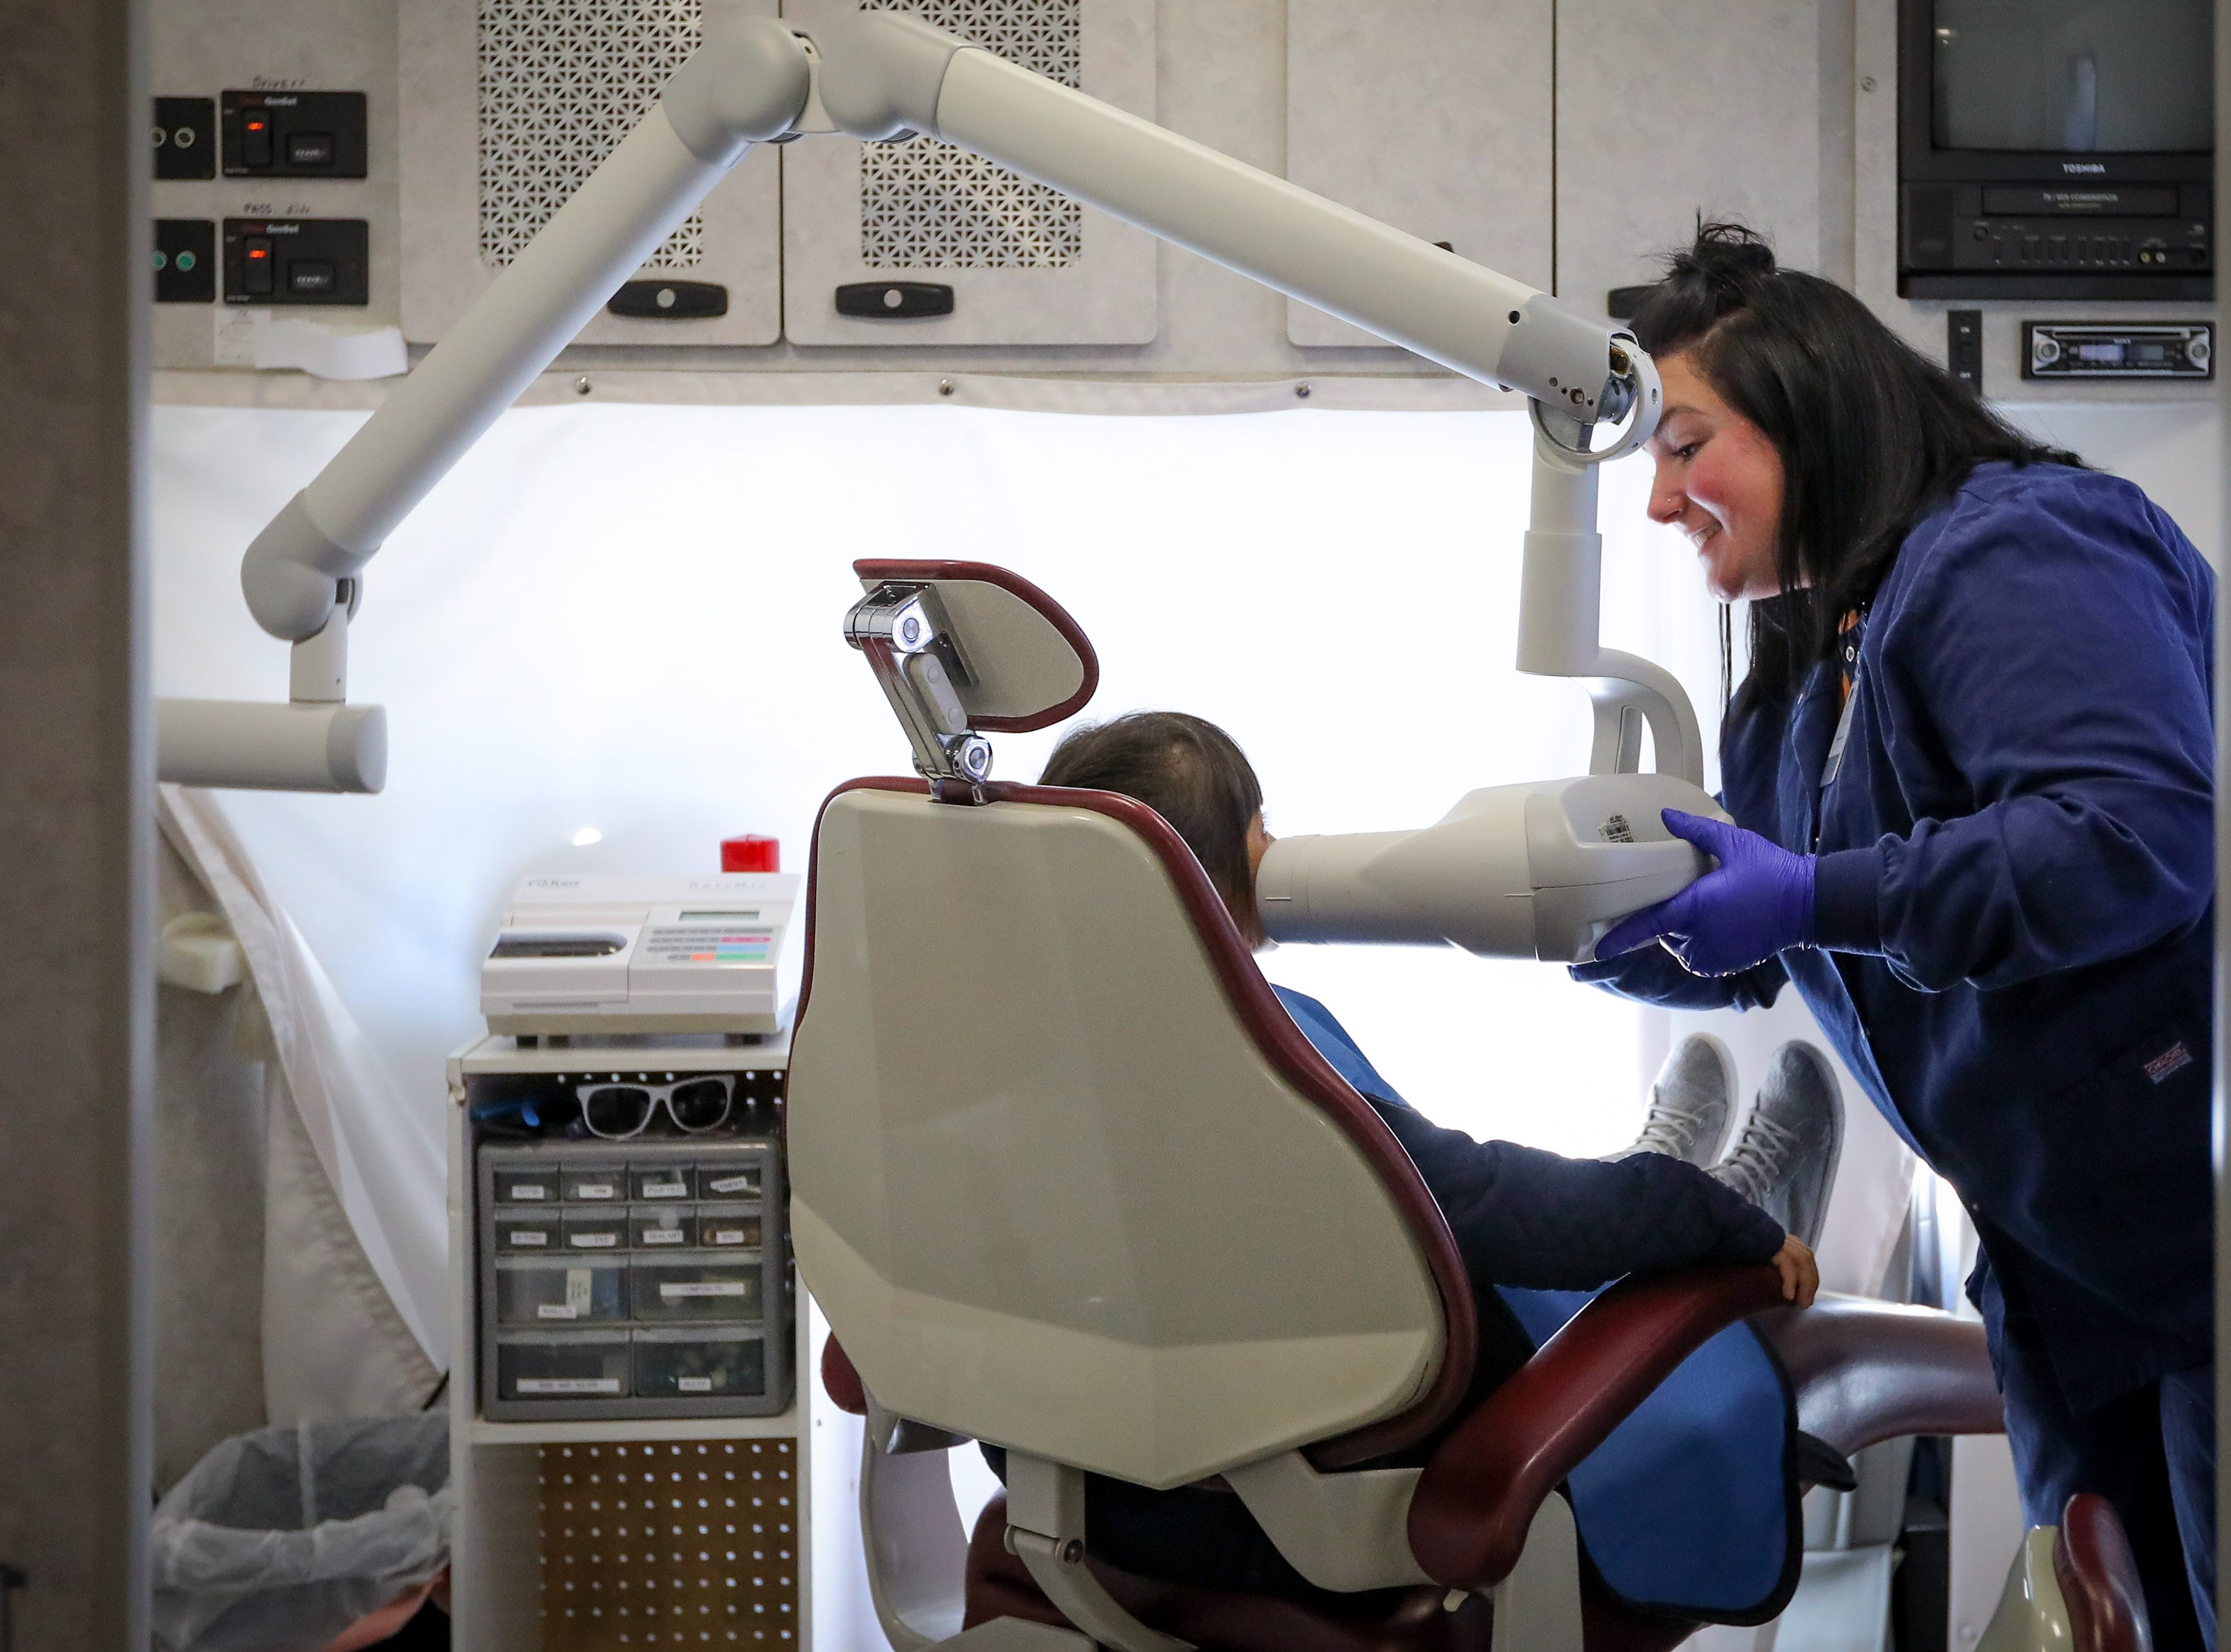 Hygienist Carissa Thompson, 37, of Des Moines, sets up the x-ray machine in the Dental Connections mobile unit at Karen Acres Elementary School on Nov. 15, 2018 in Urbandale, Iowa. Dental Connections is a mobile unit that provides basic dental check-ups for students.